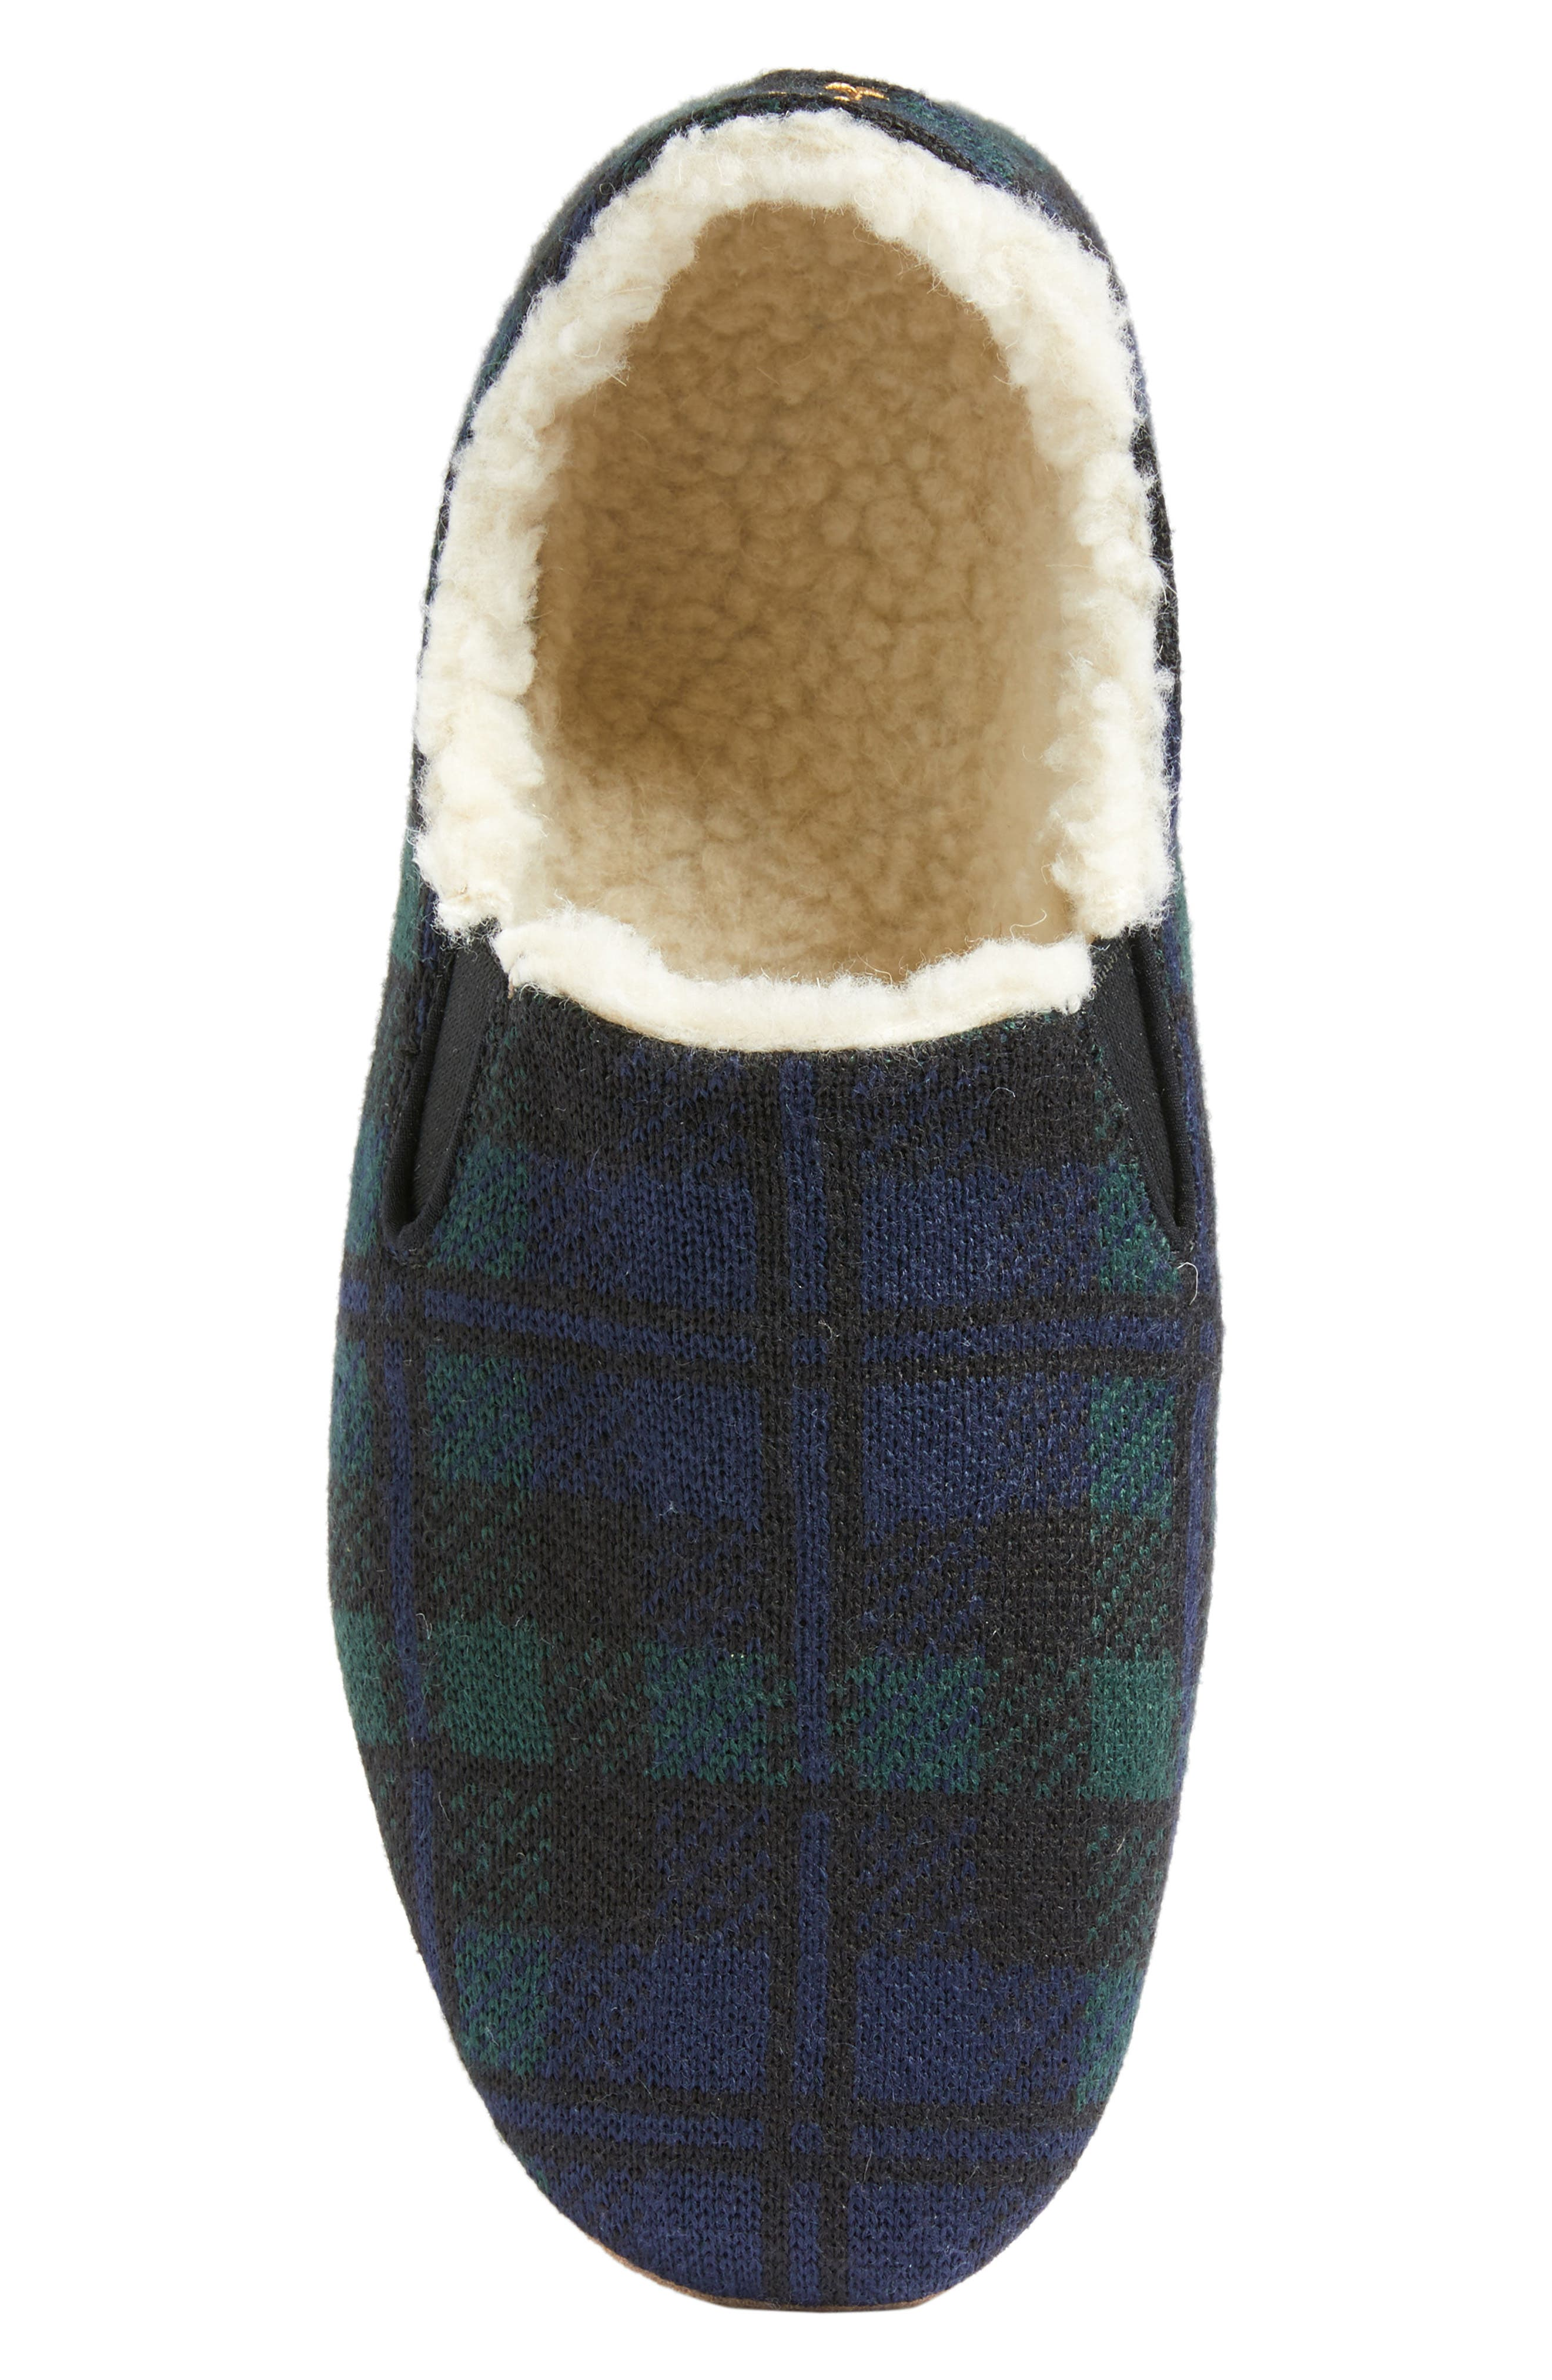 Black Watch Plaid Nomad Slippers,                             Alternate thumbnail 4, color,                             Navy